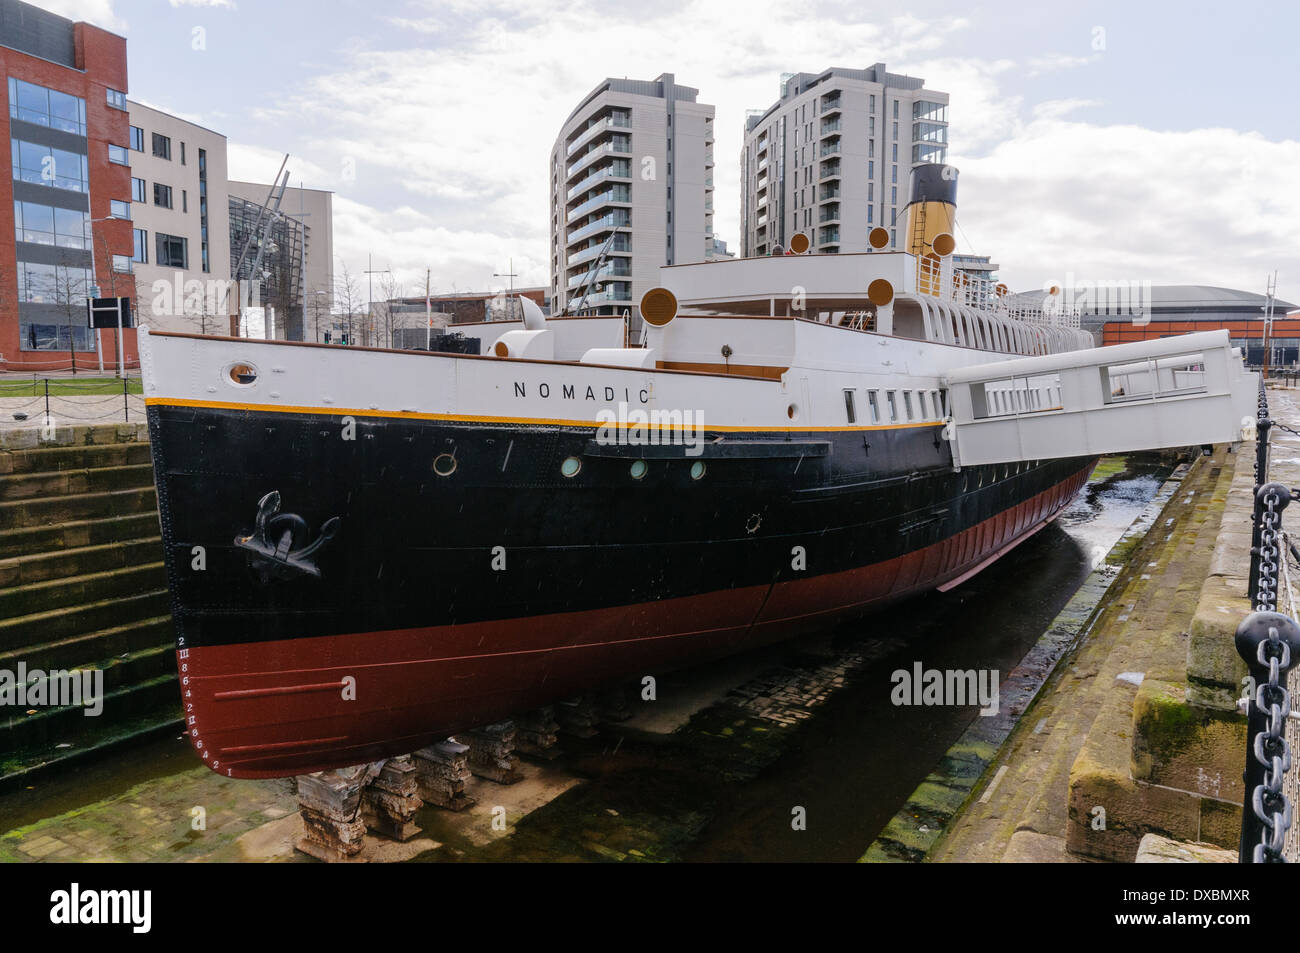 Nomadic, the only surviving White Star Line ship, built to ferry passengers to and from the Titanic - Stock Image